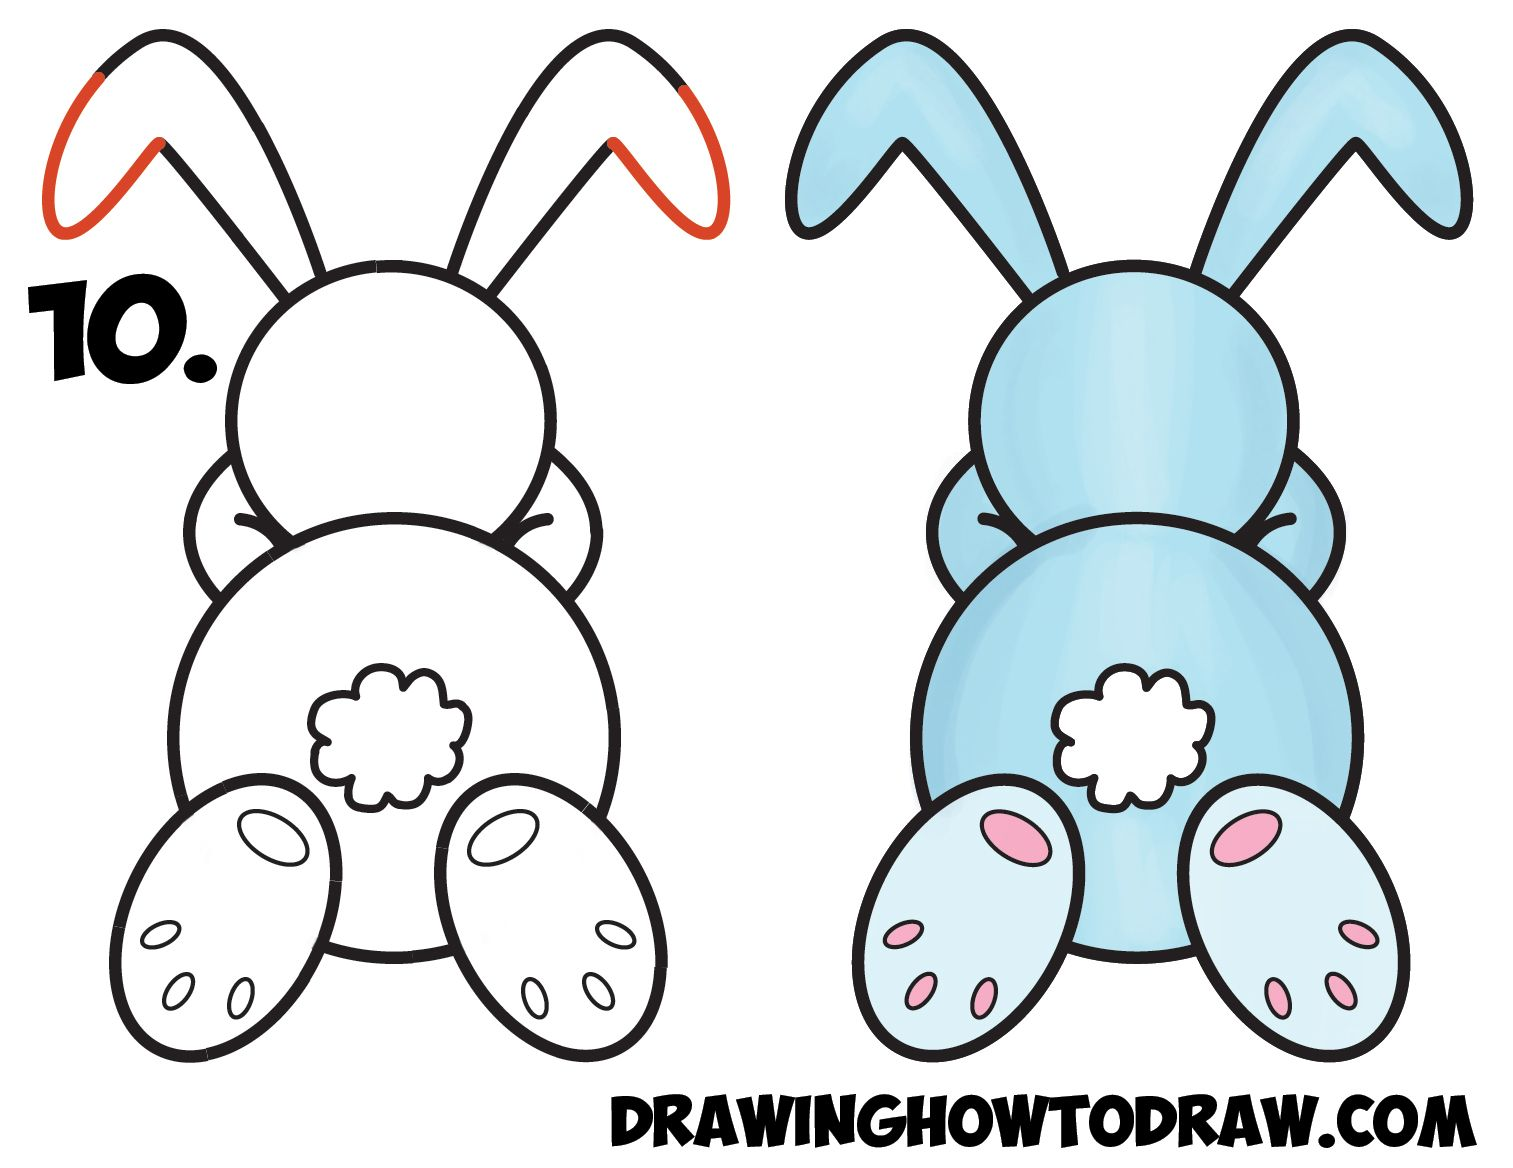 - How To Draw A Cute Cartoon Sleeping Bunny Rabbit From #8 Shape